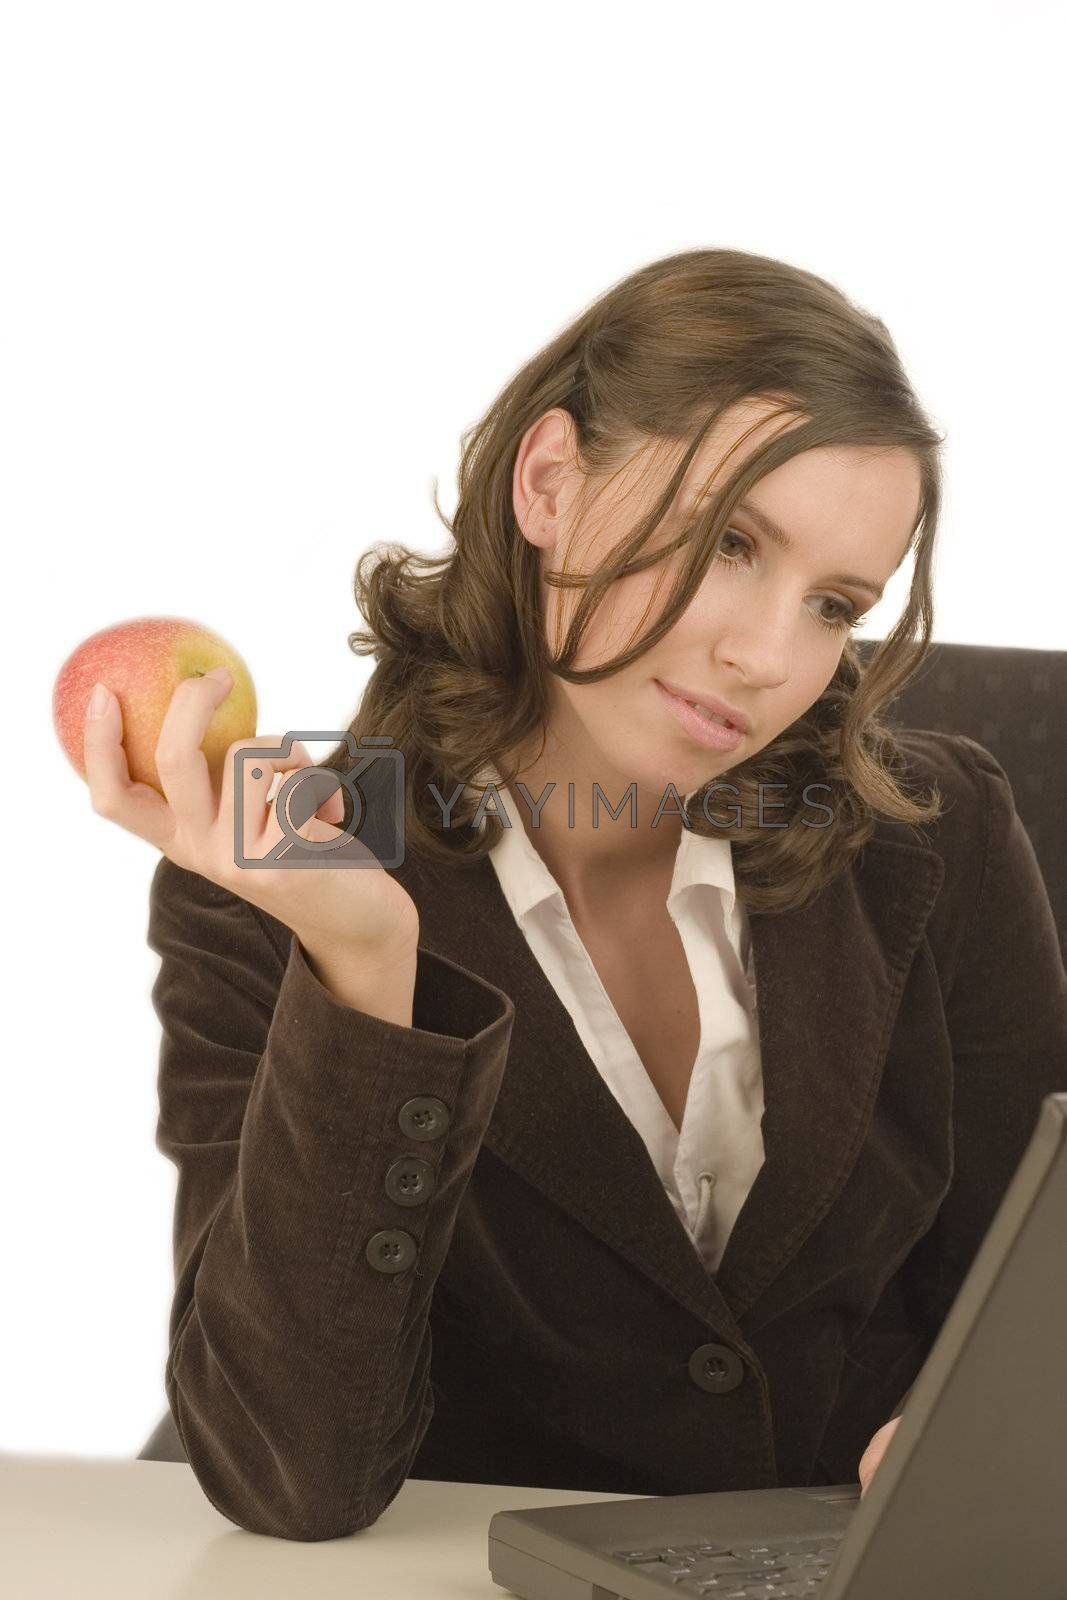 Young attractive woman looking at a laptop with an apple in her hand